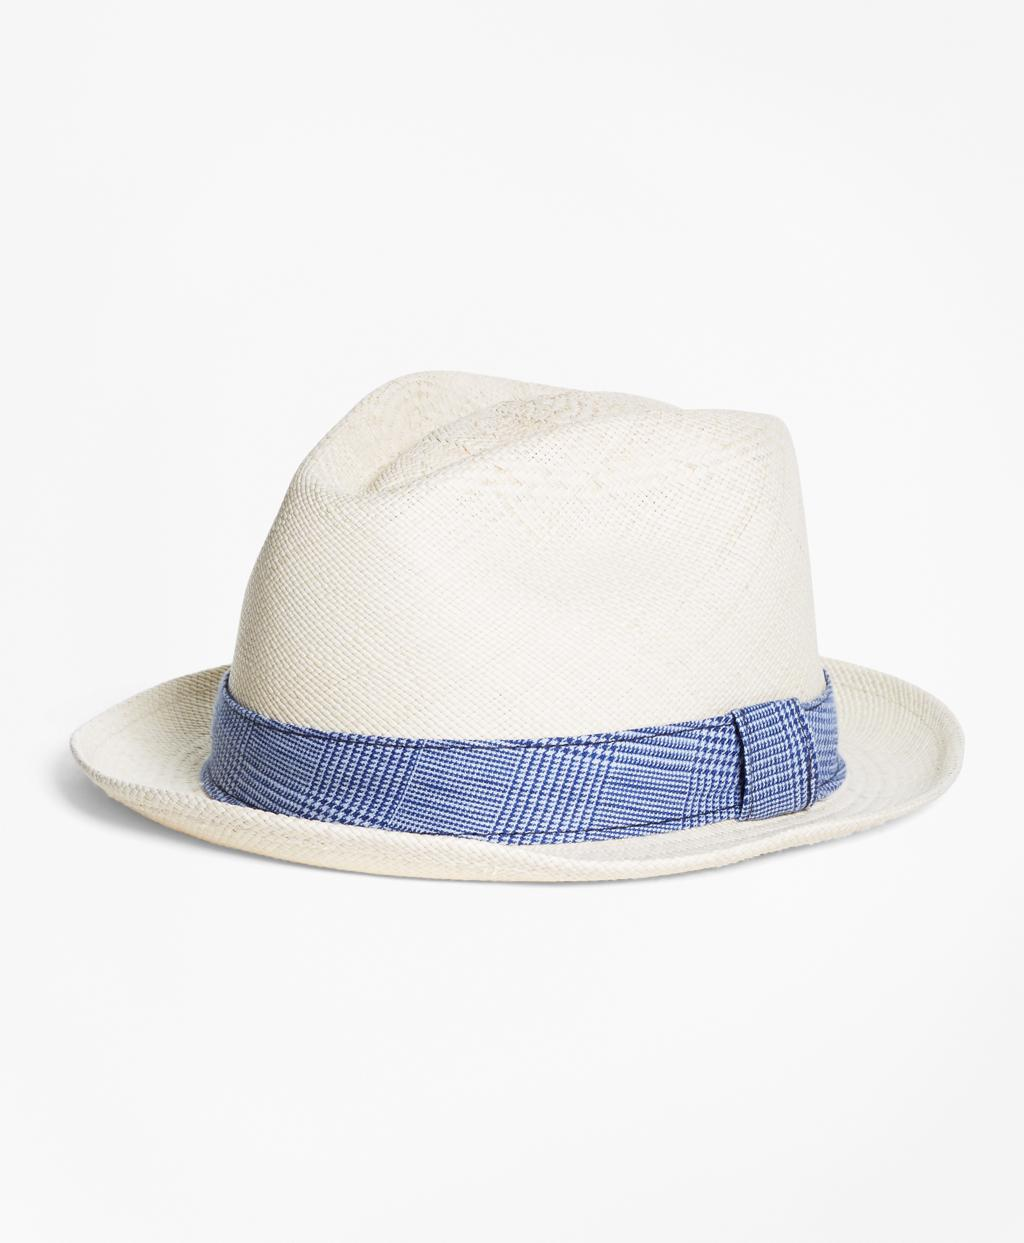 249d61ac2867f Lyst - Brooks Brothers Straw Block Hat in Natural for Men